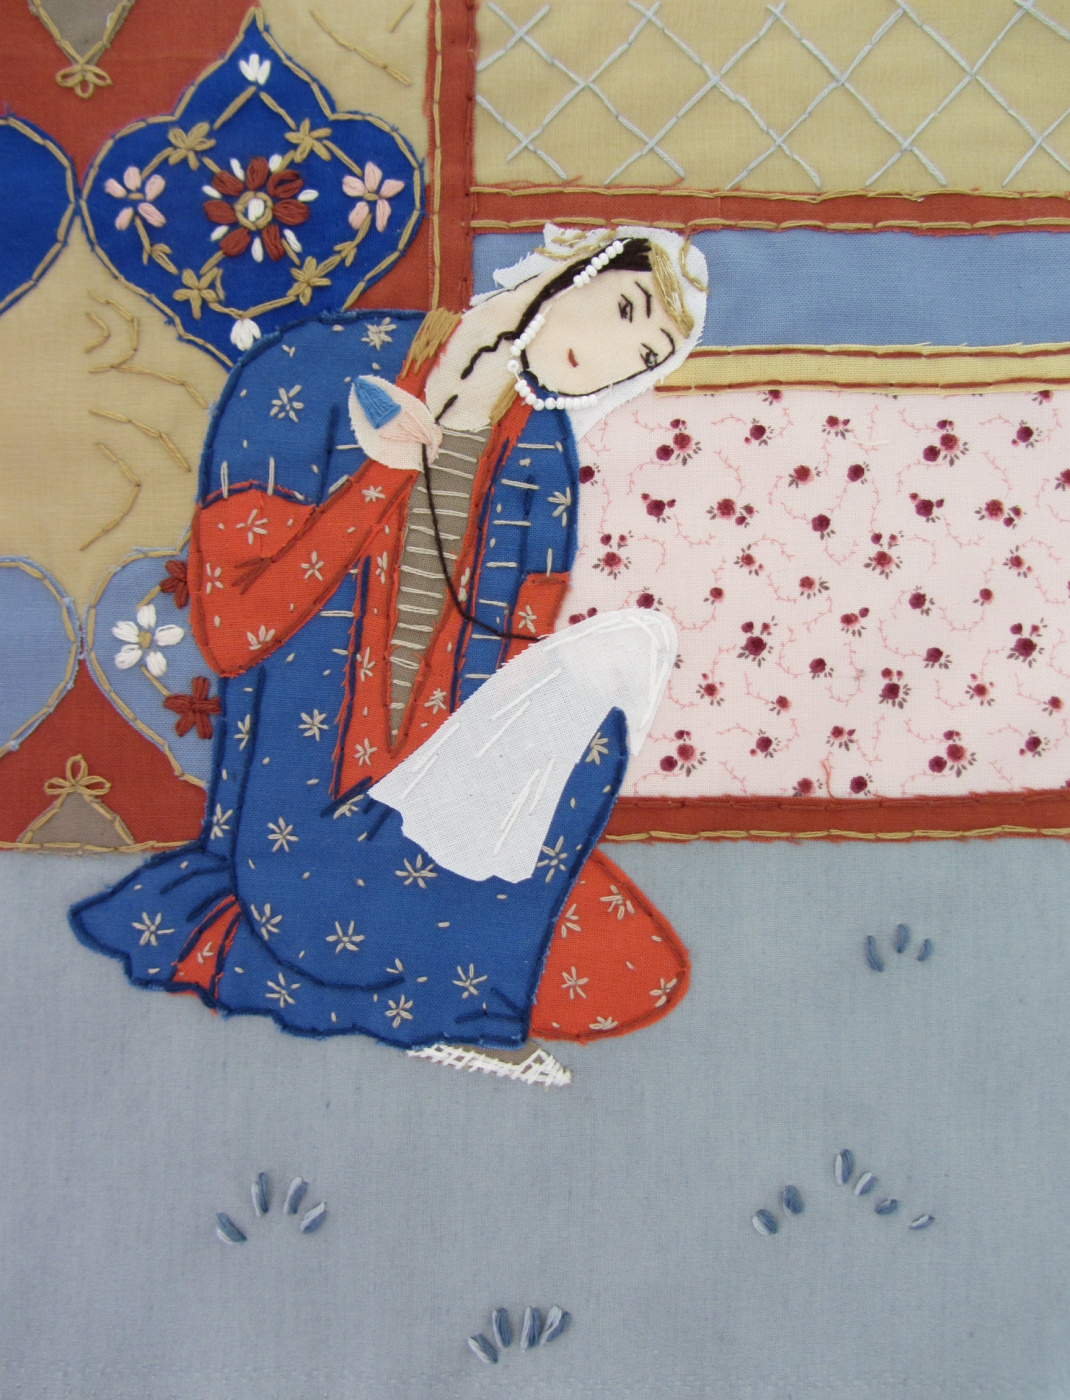 Unknown artist. Persian miniature. Copy (embroidered collage)